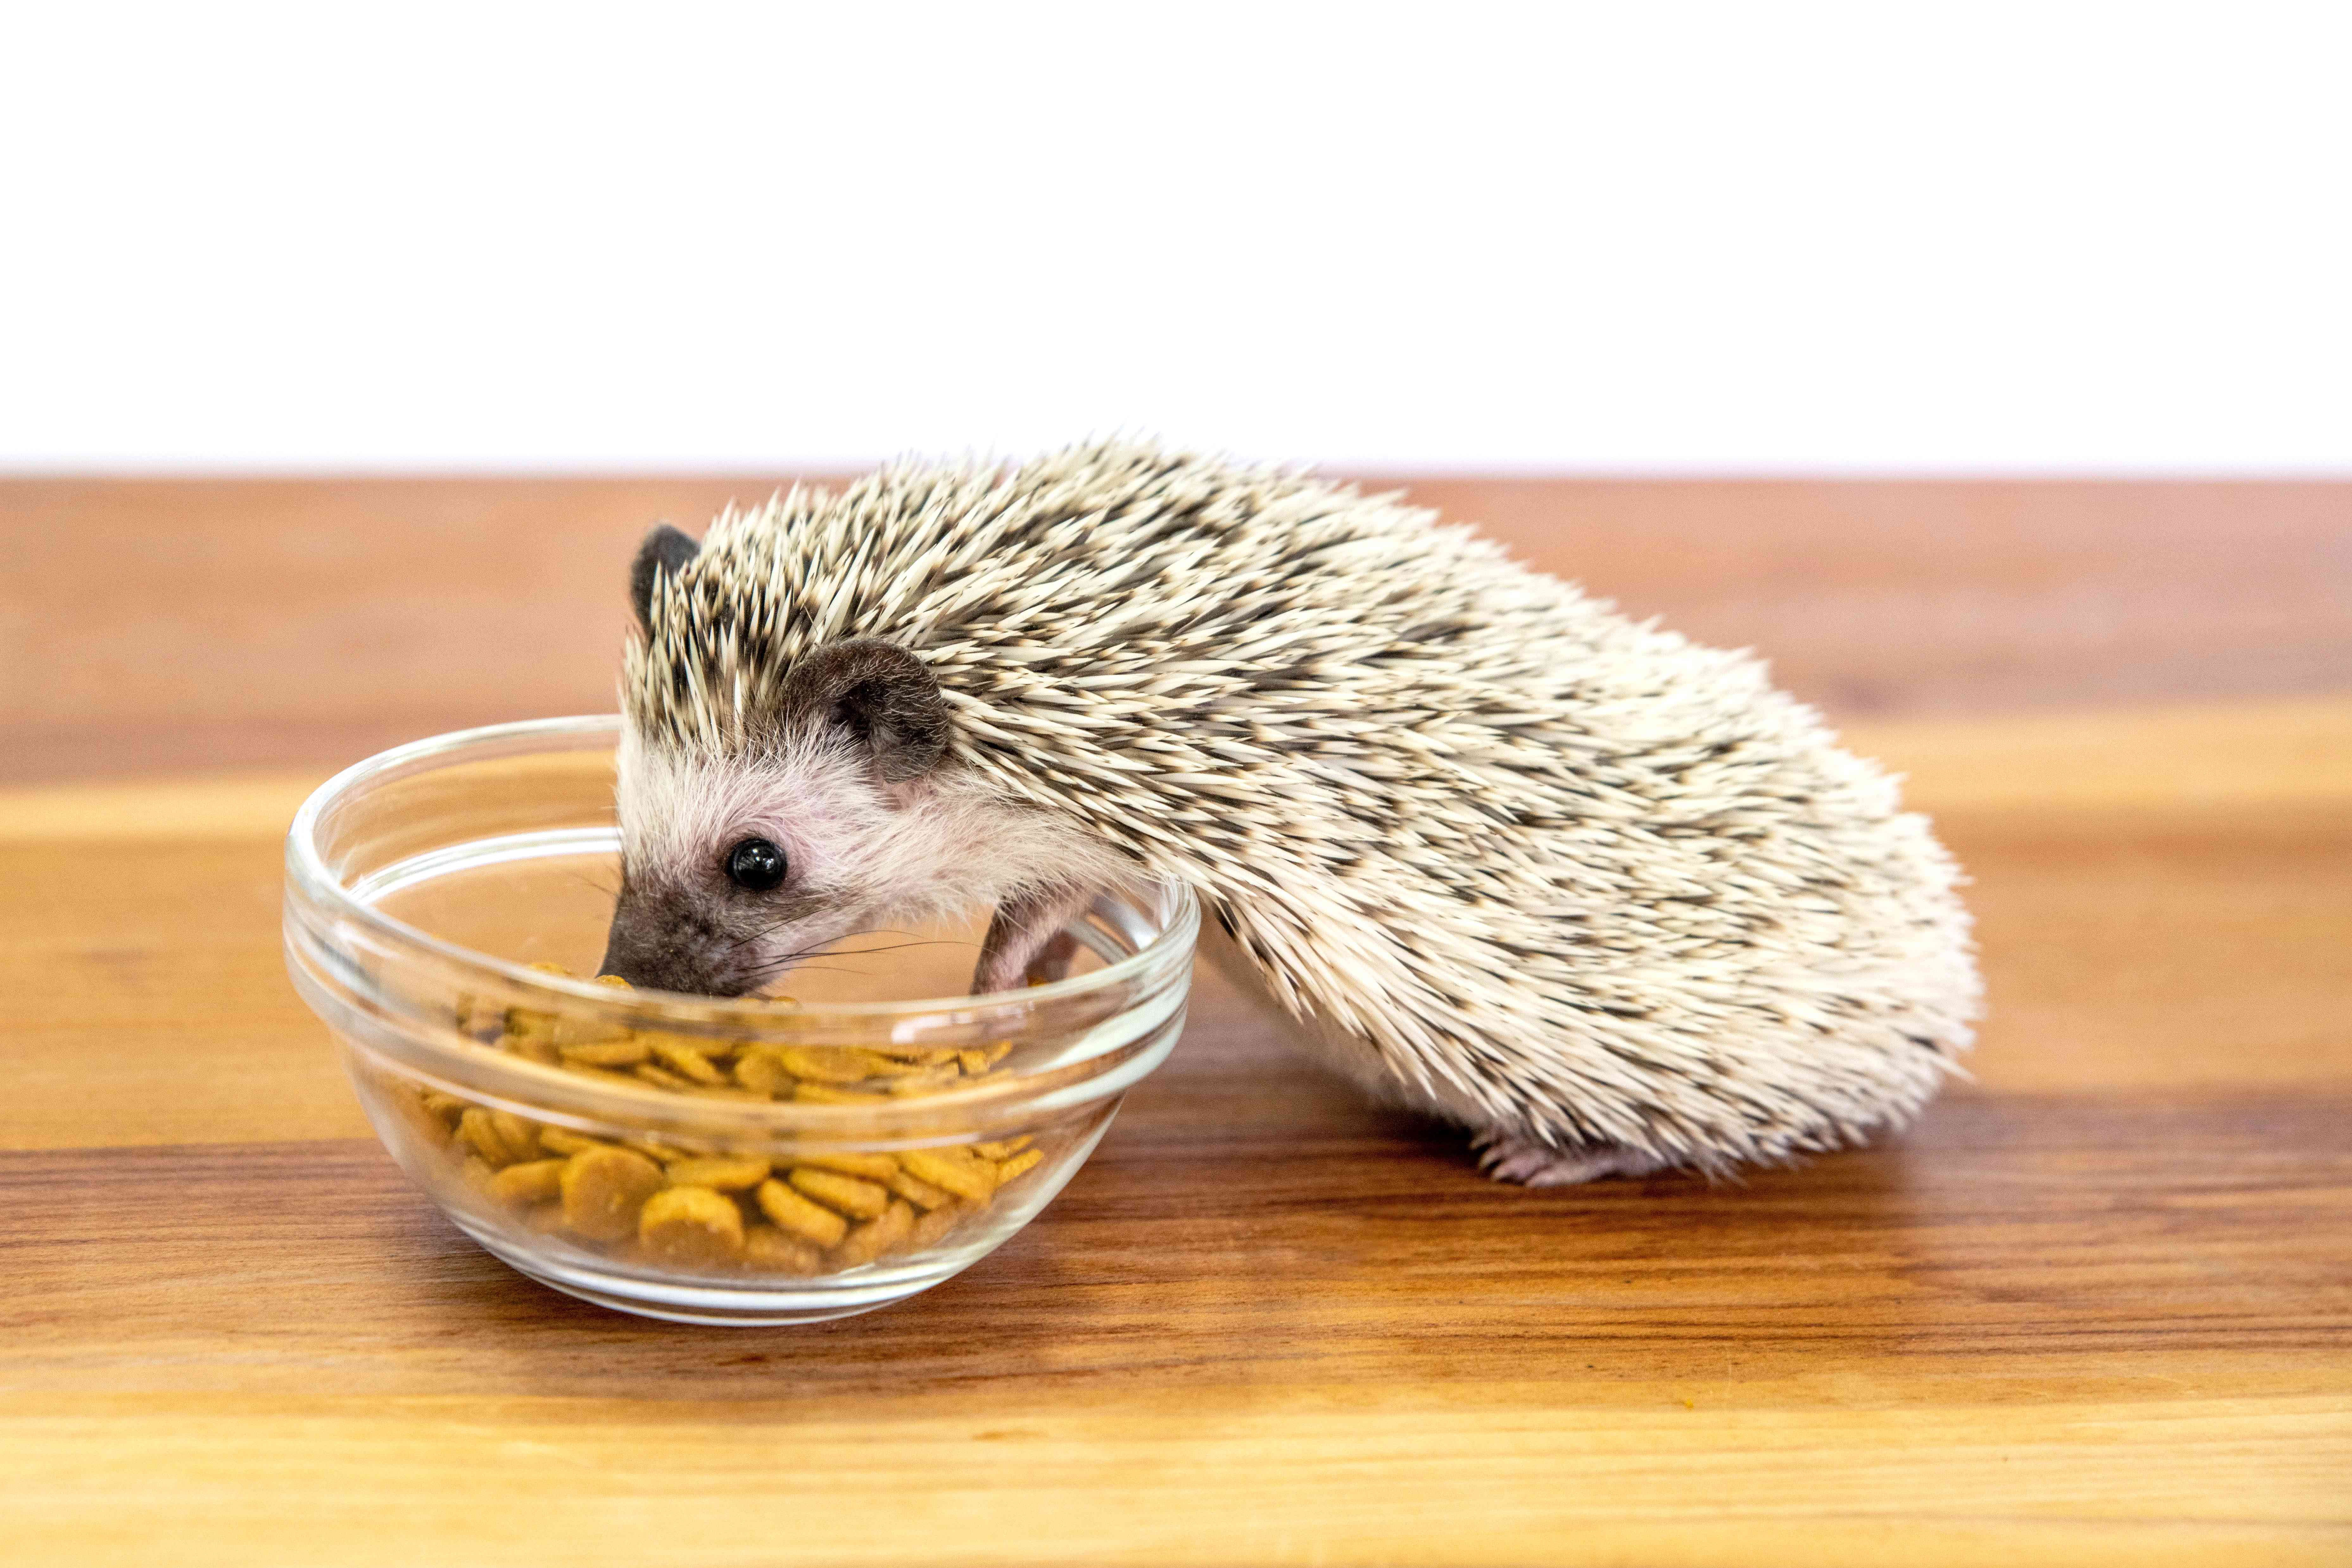 Hedgehog eating out of glass bowl with kibble